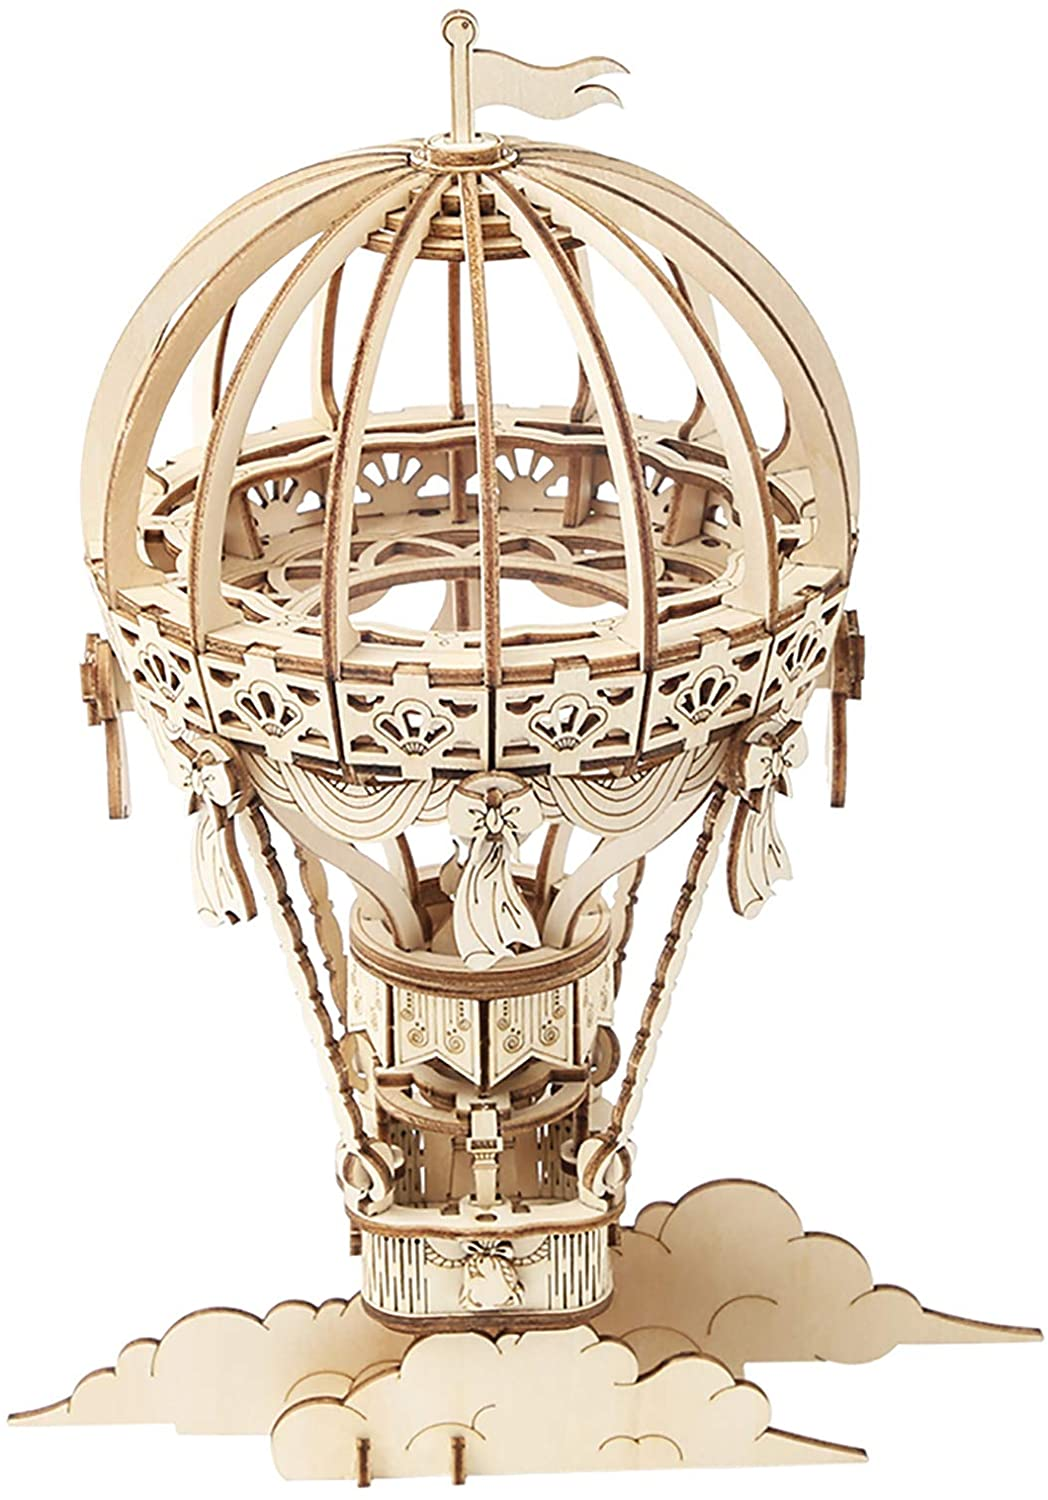 Wooden hot air balloon puzzle